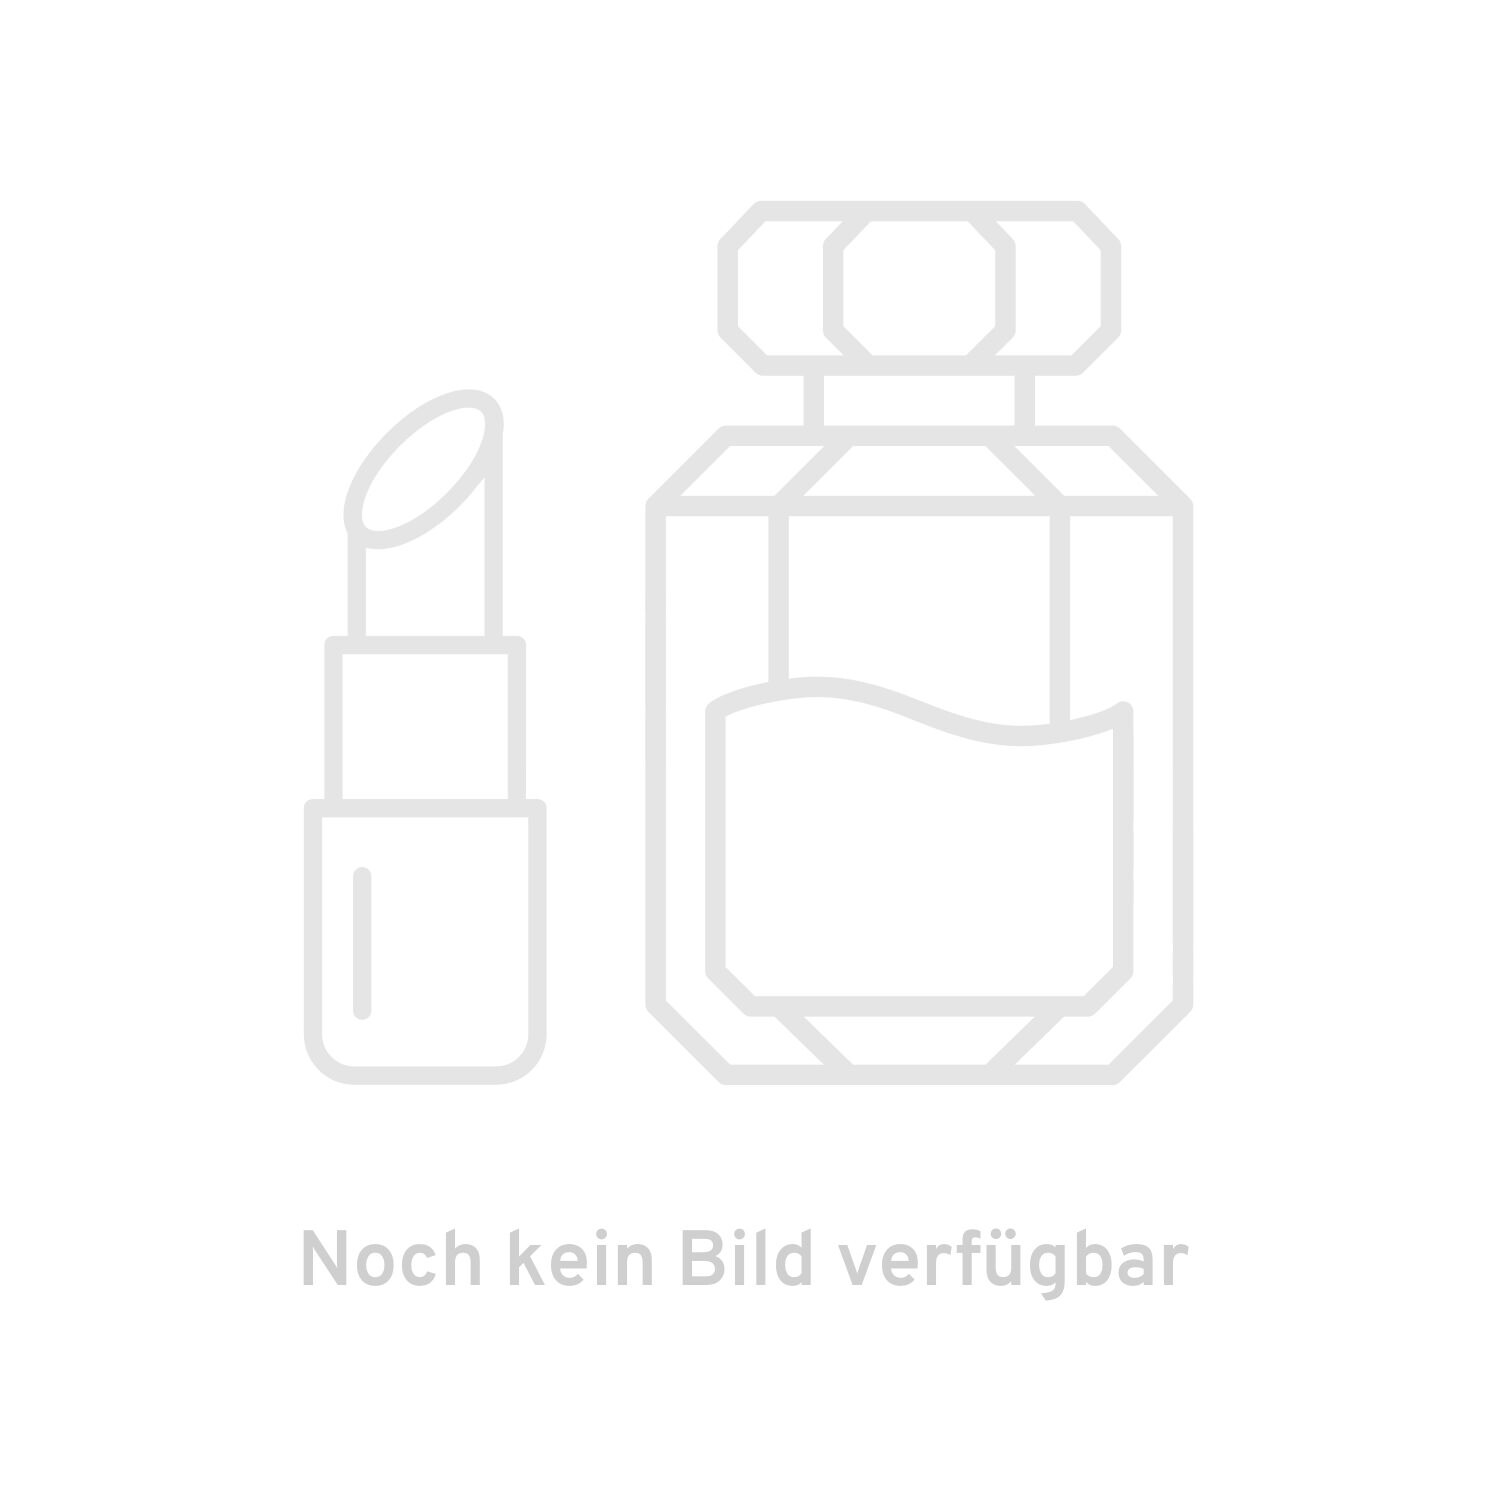 brilliant™ emollient finishing gloss